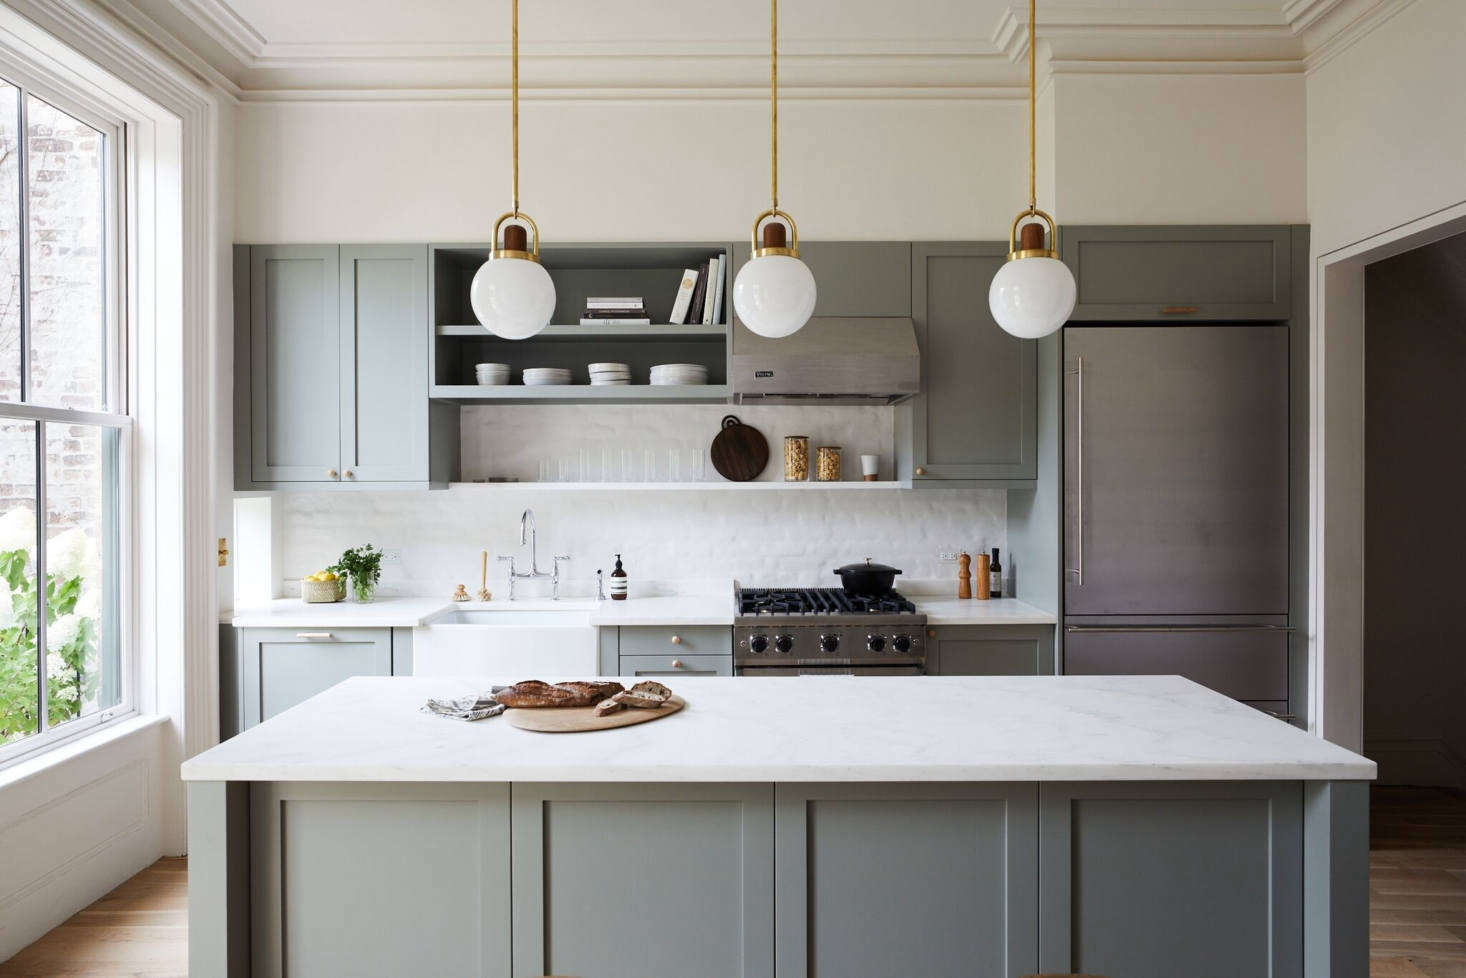 Modern Kitchen Cabinets Ikea Steal This Look: A Modern Brooklyn Kitchen, Ikea Cabinets Included